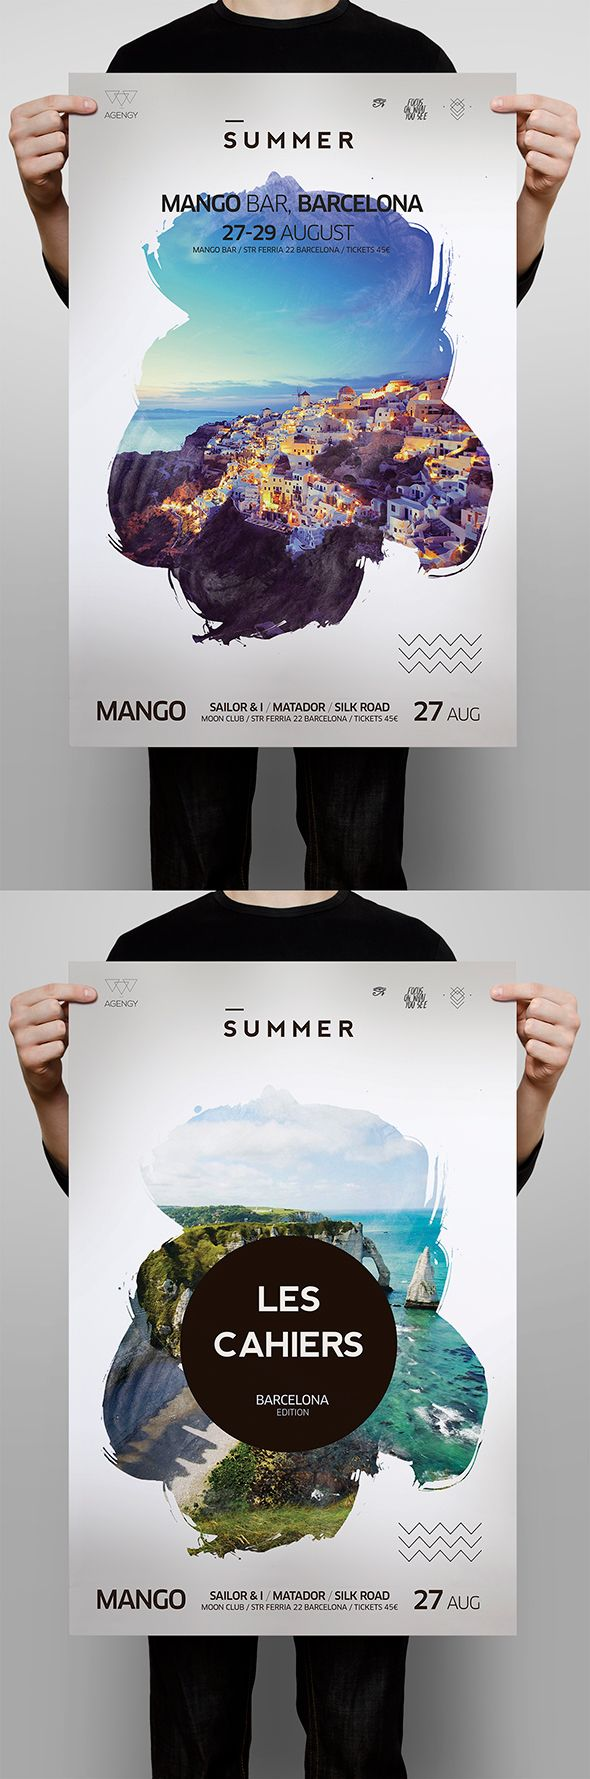 Poster design behance - Iberica Poster On Behance